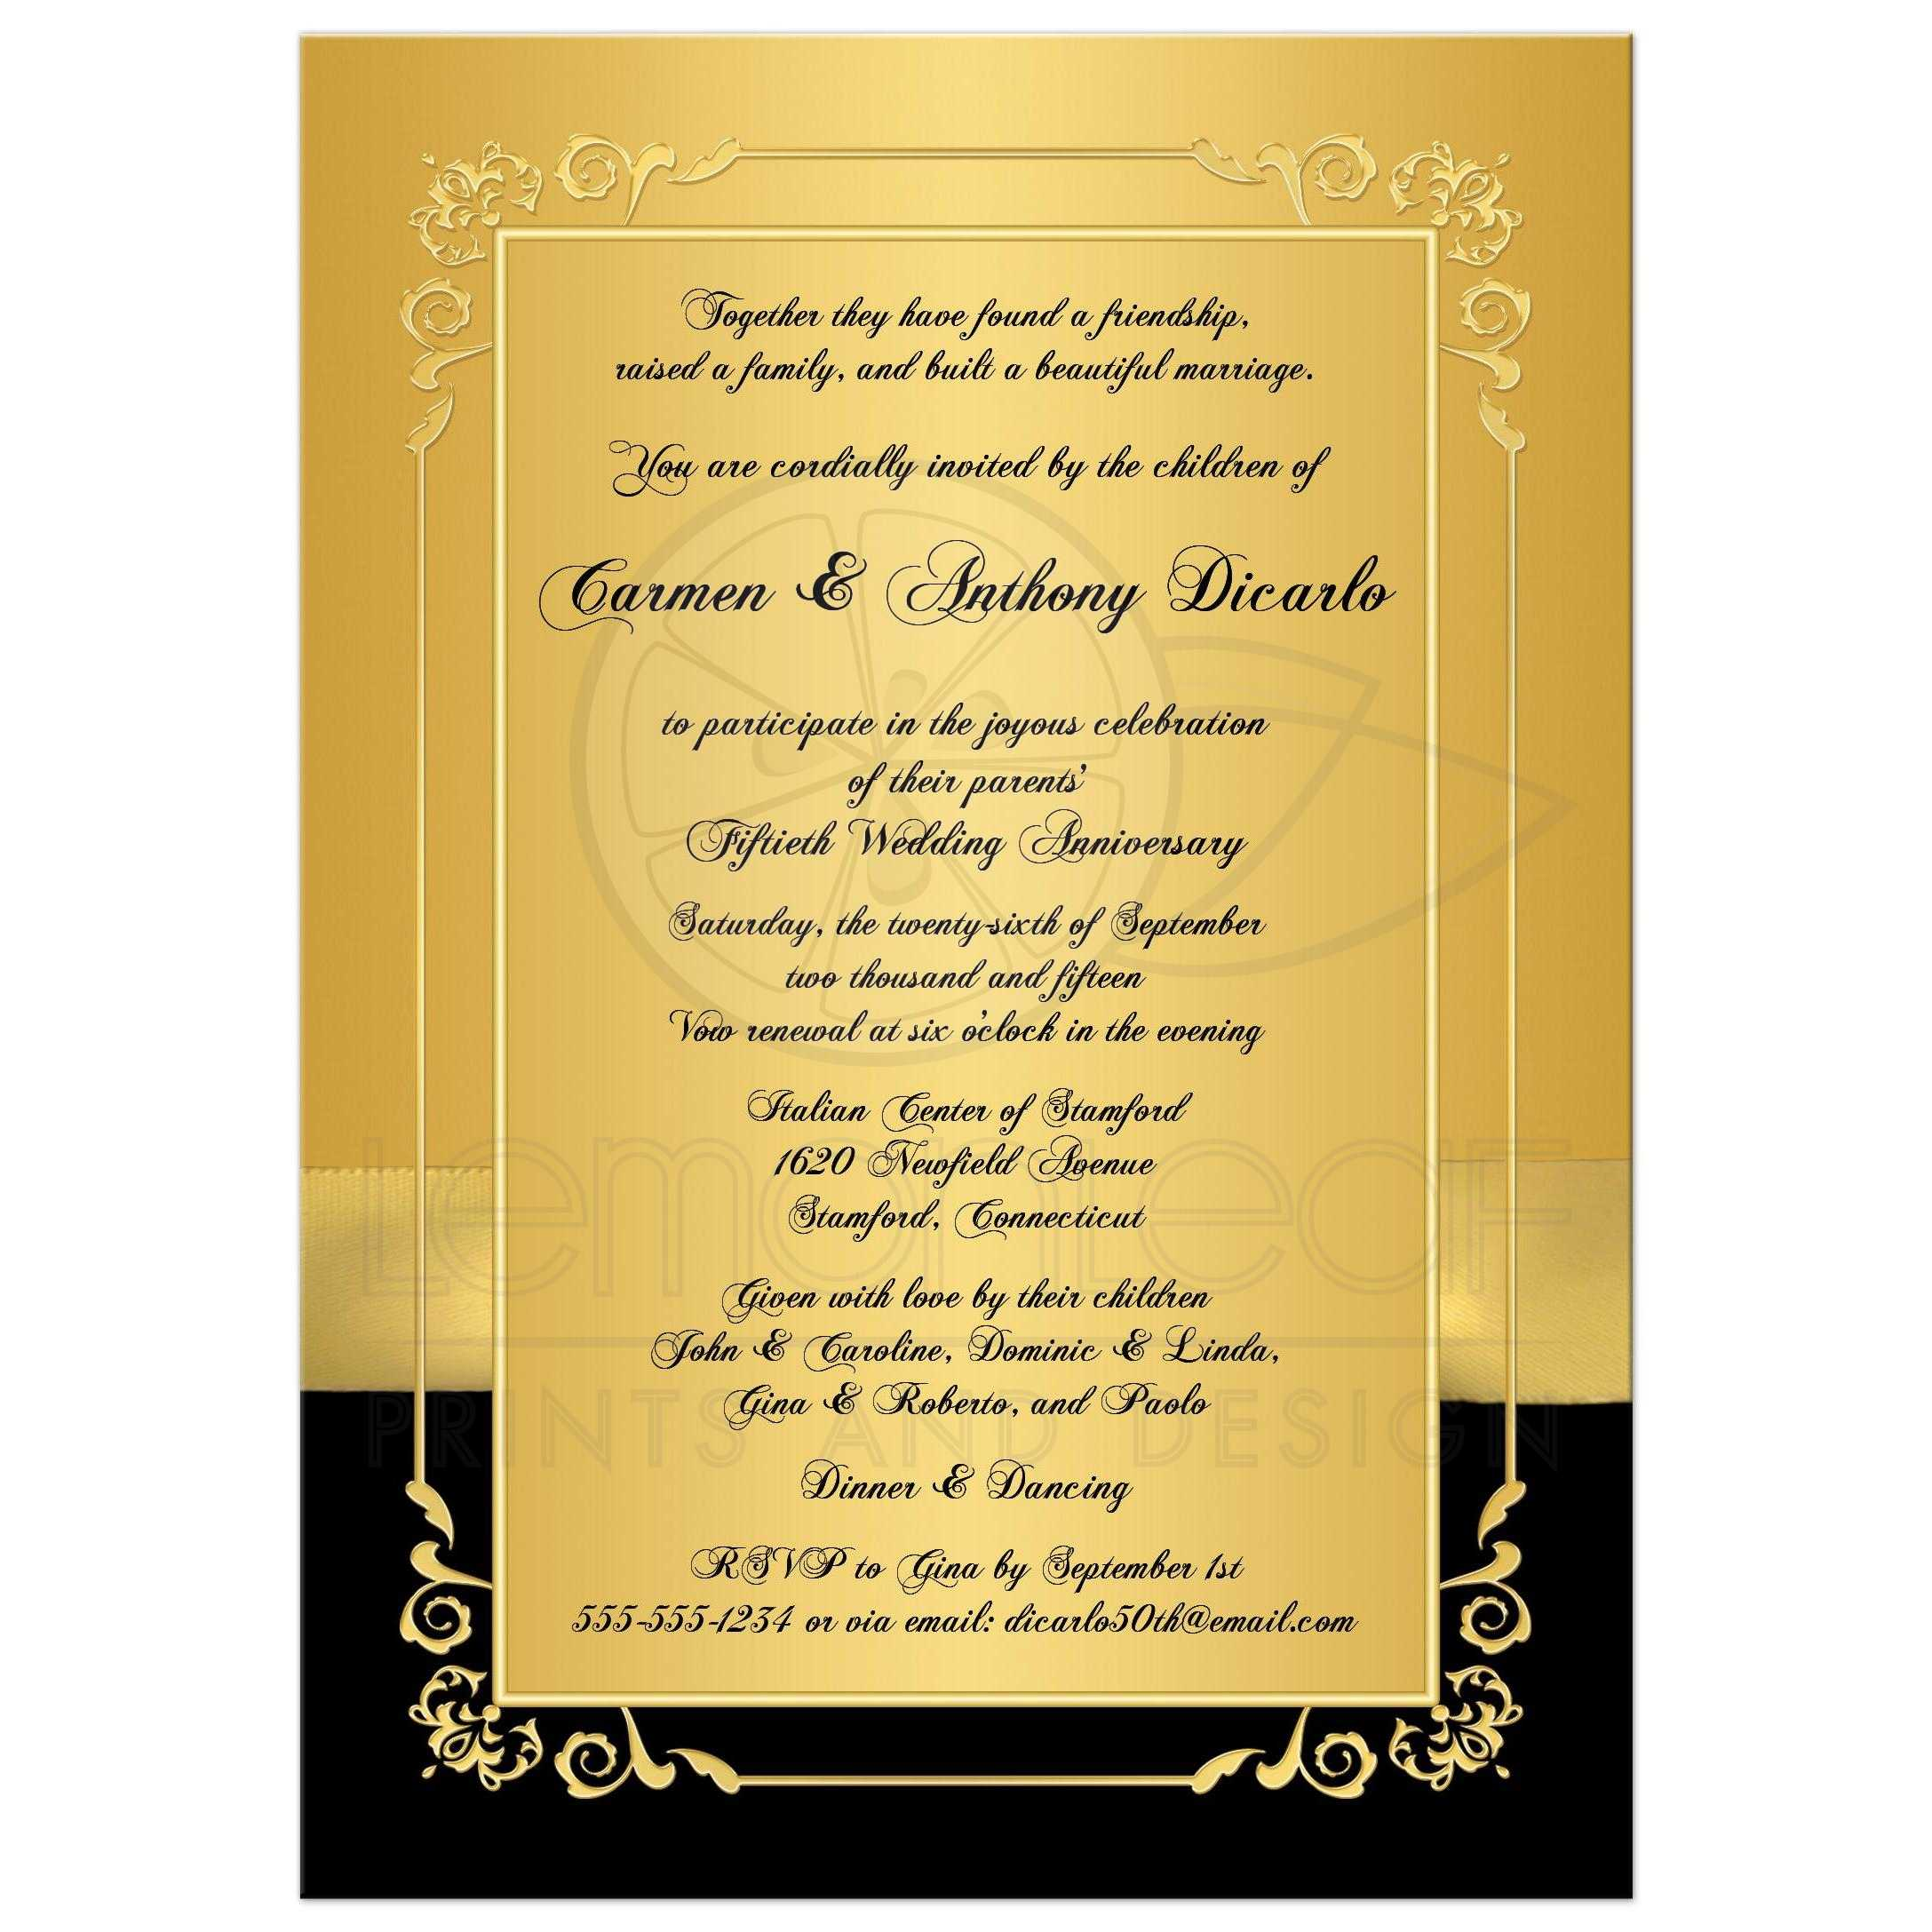 50th Wedding Anniversary Invitation | Black and Gold Floral ...